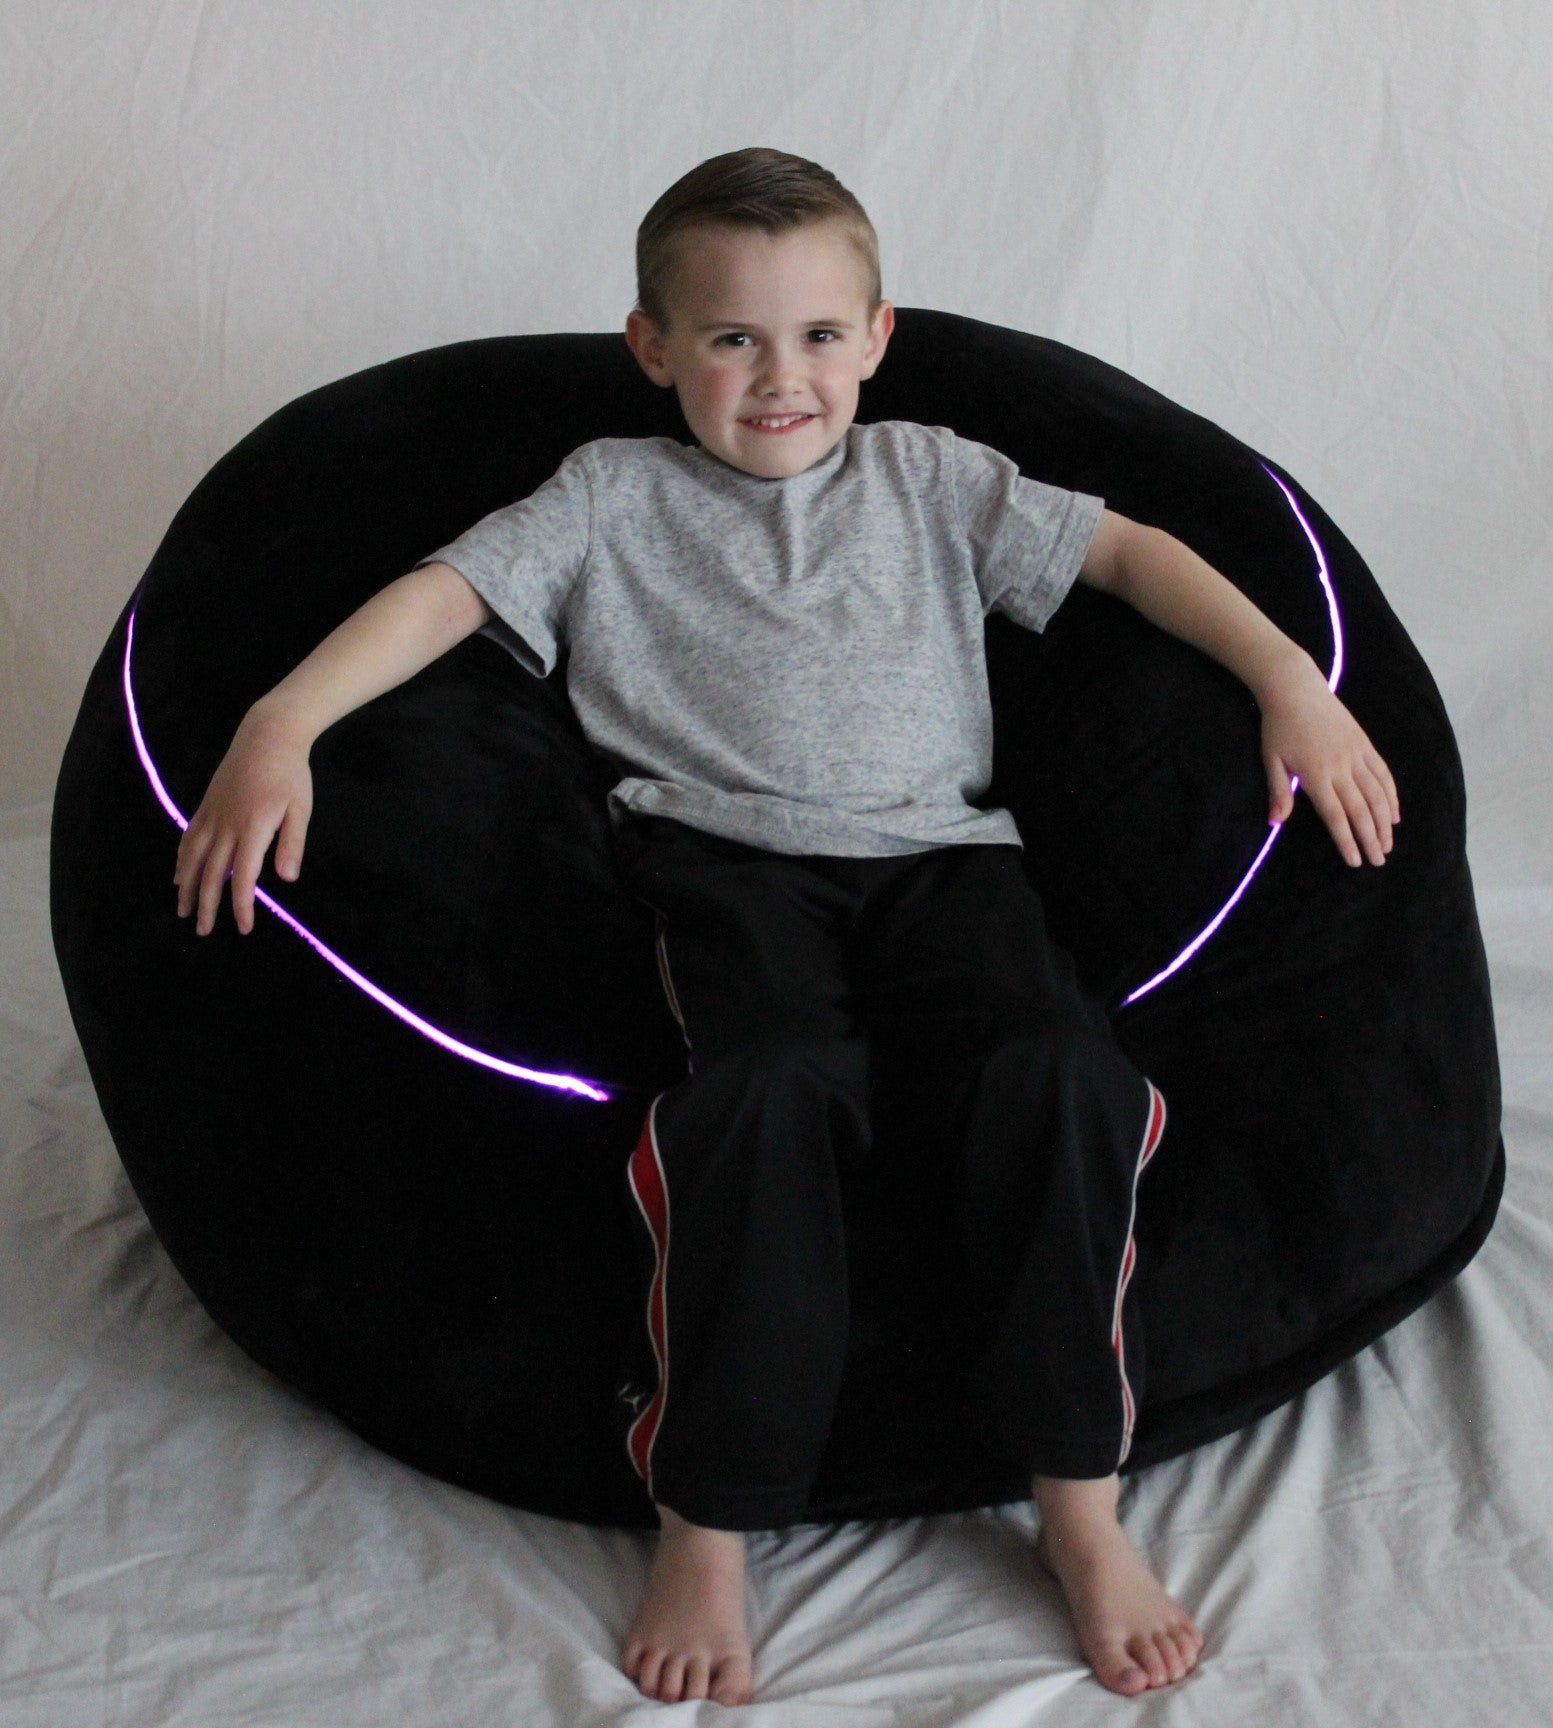 Remarkable The Beam Bag Bean Bag Chair With Fiber Optic Lights Remote Squirreltailoven Fun Painted Chair Ideas Images Squirreltailovenorg